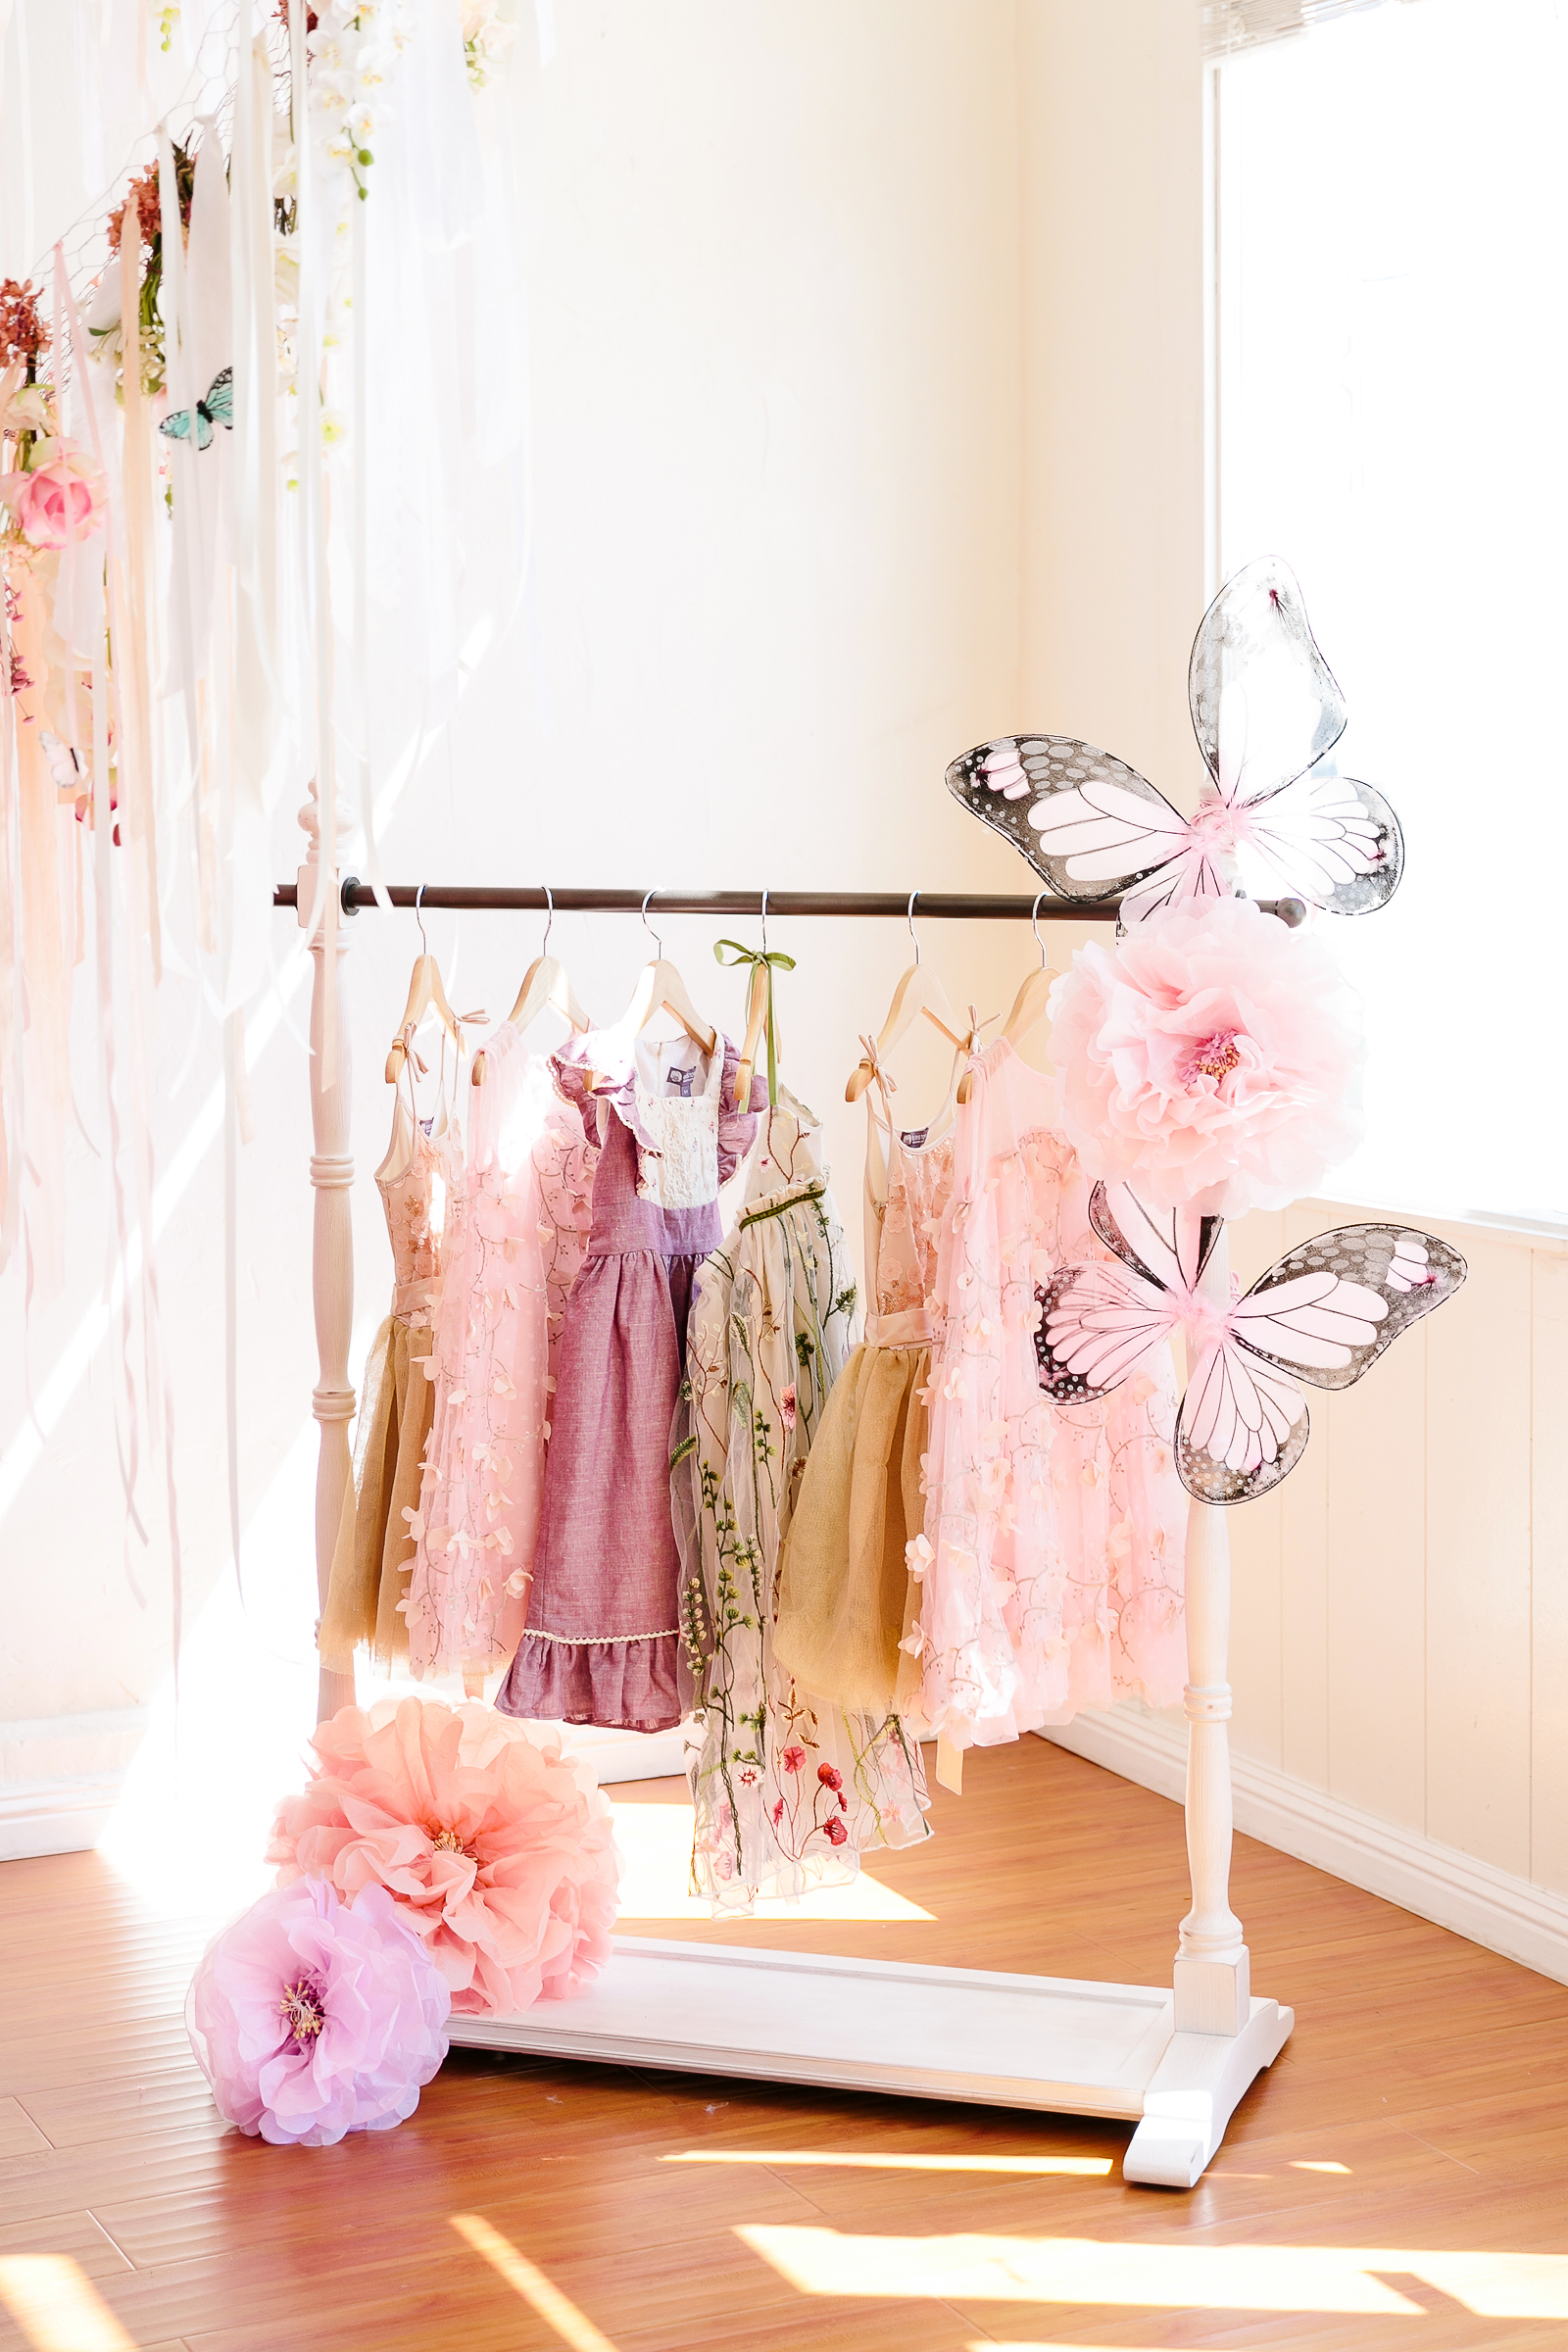 butterfly party flower decorations rack of dress up clothing